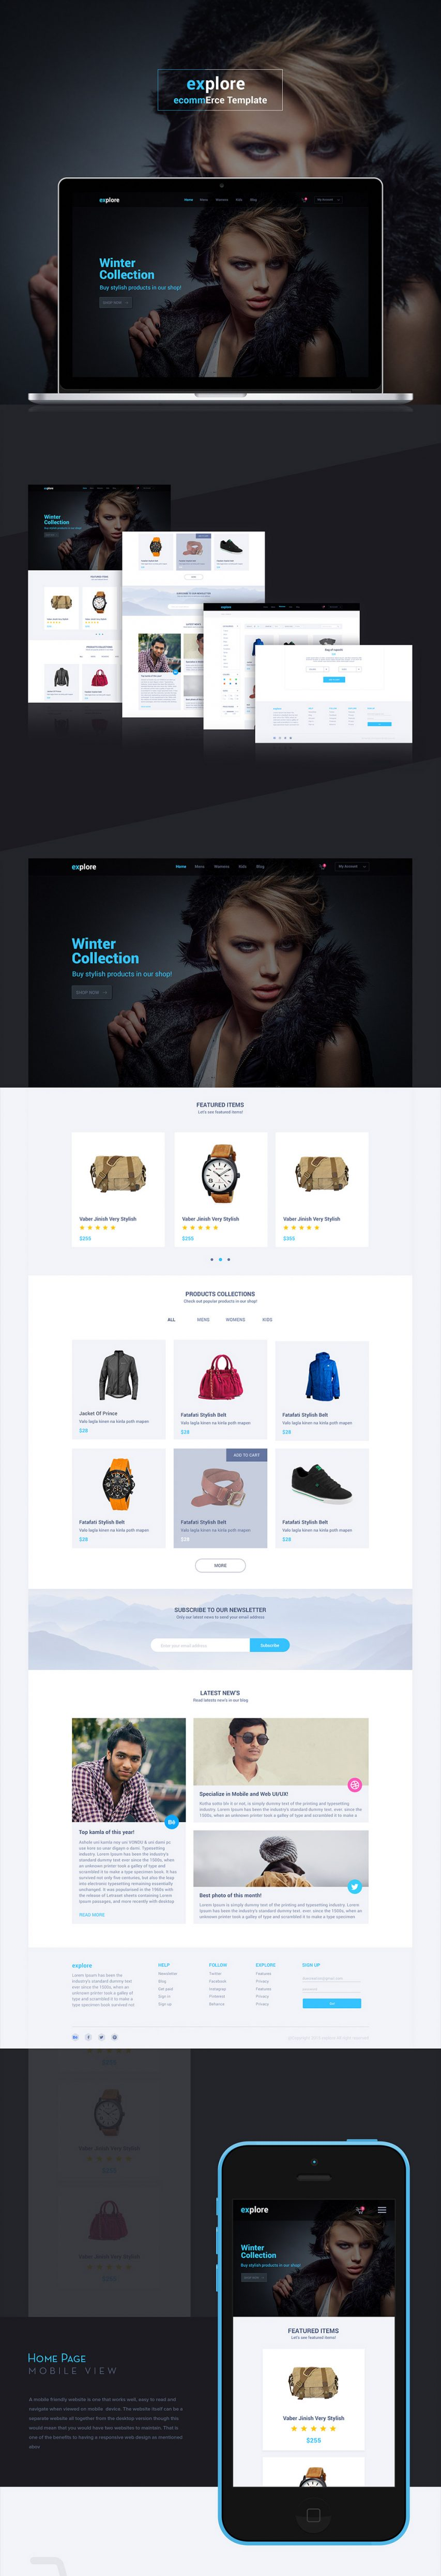 Simple eCommerce Website Templates Free PSD